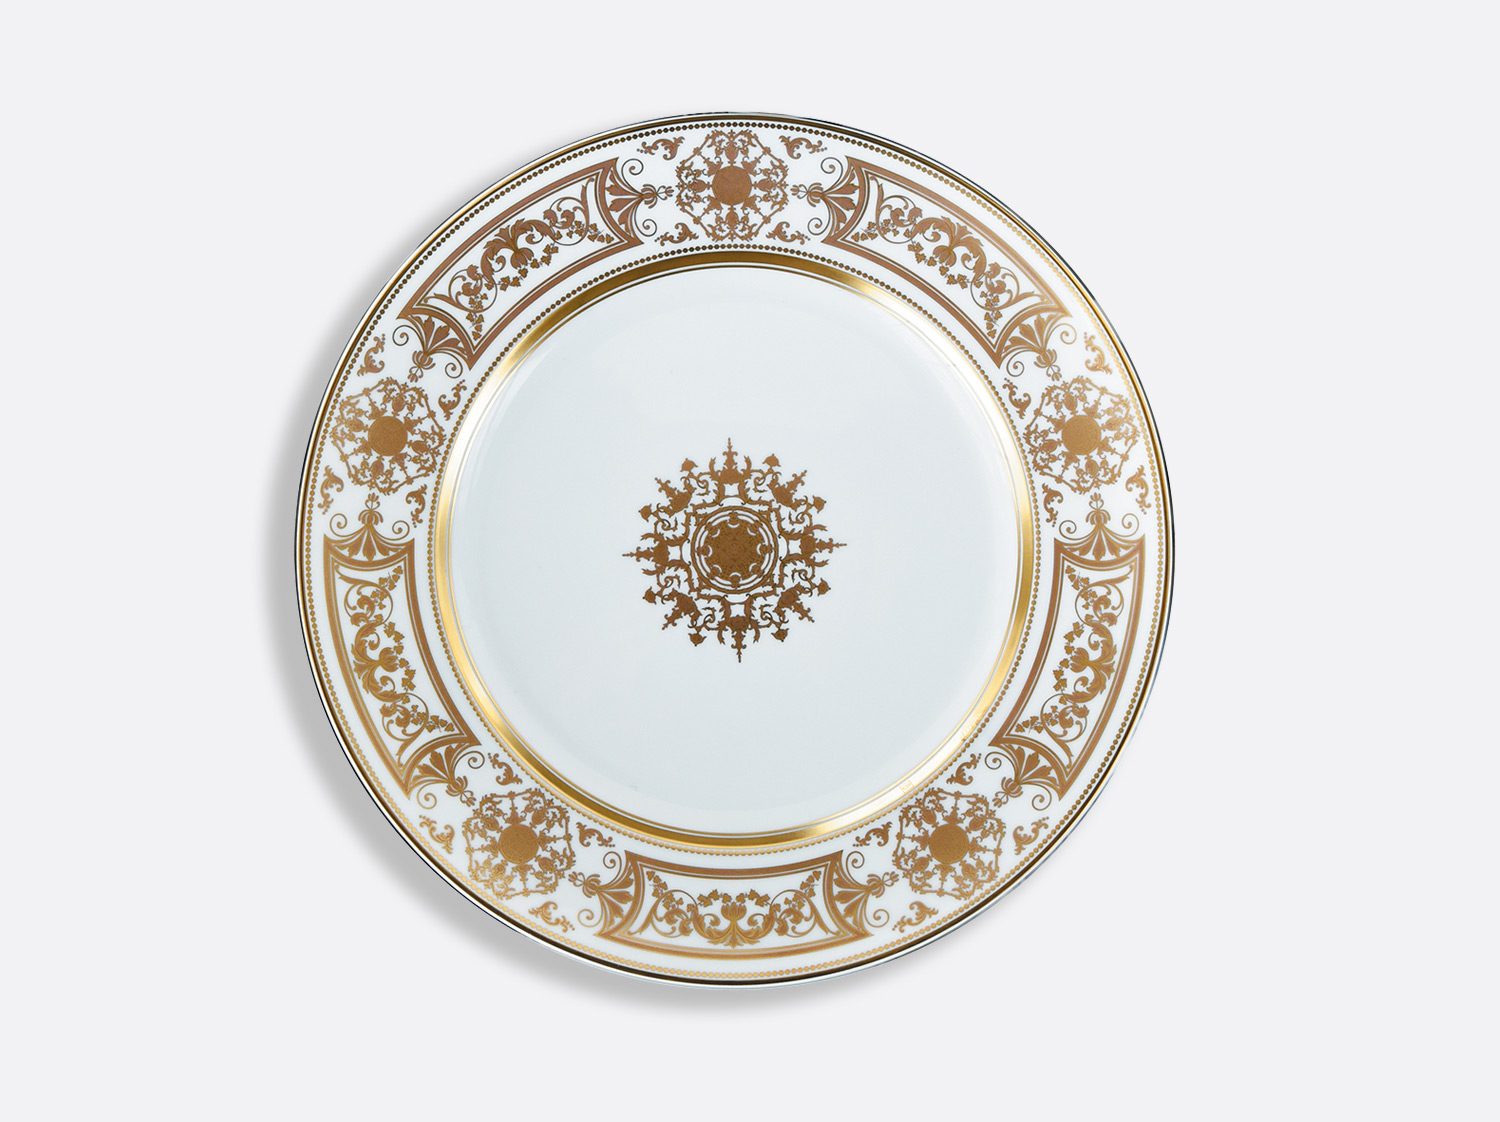 Assiette à dîner 26 cm en porcelaine de la collection Aux Rois Or Bernardaud